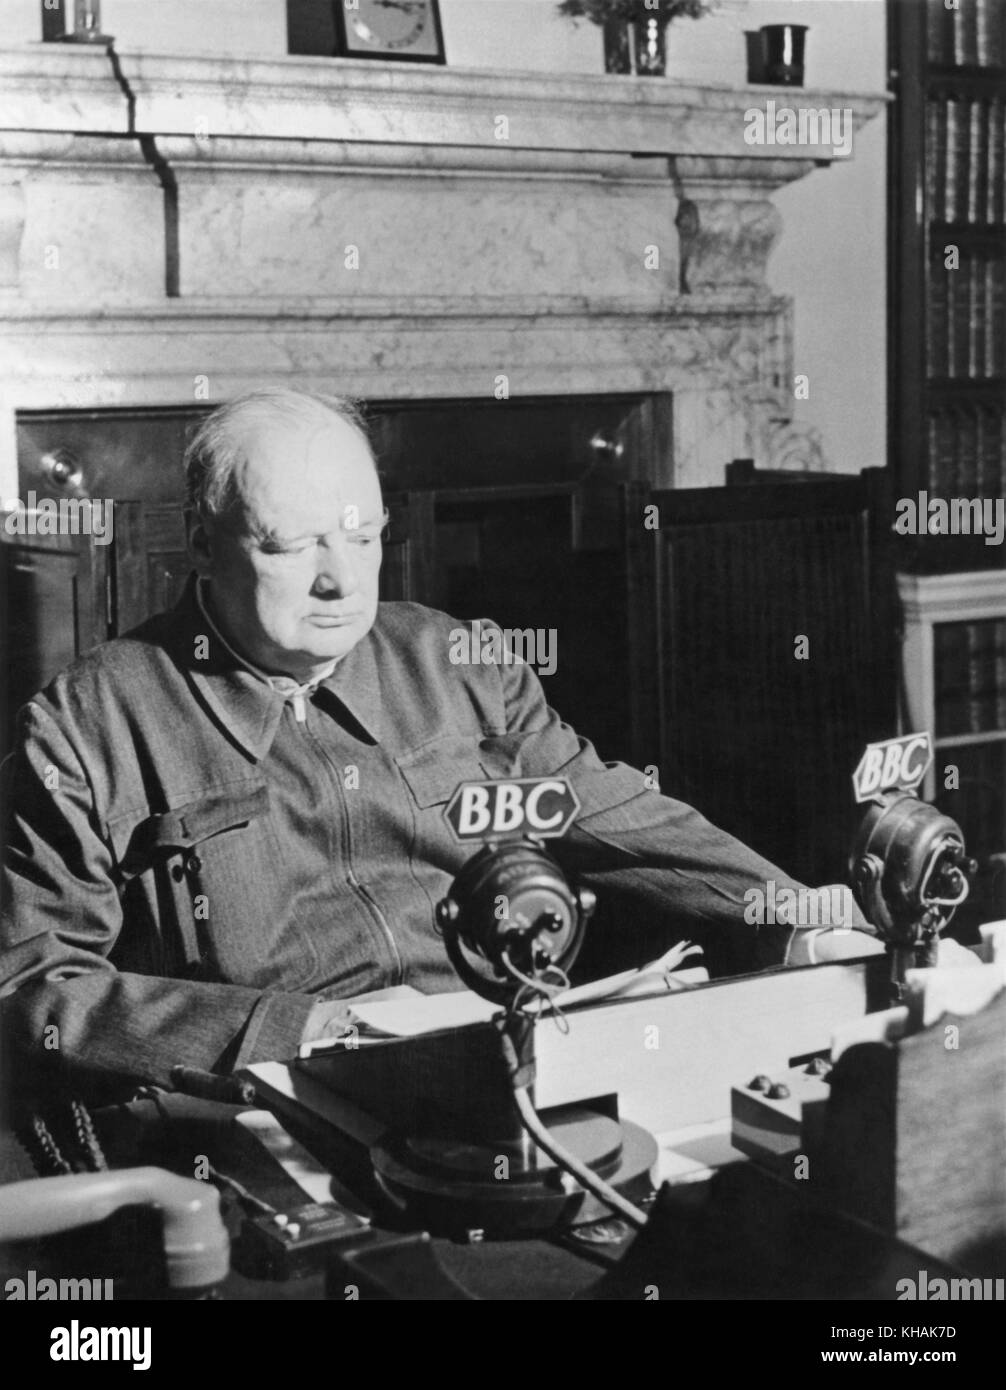 britains collective memory of churchill Our banknotes are repositories of the united kingdom's collective memory, he added  5 pound note featuring winston churchill  isolated britain to continue.